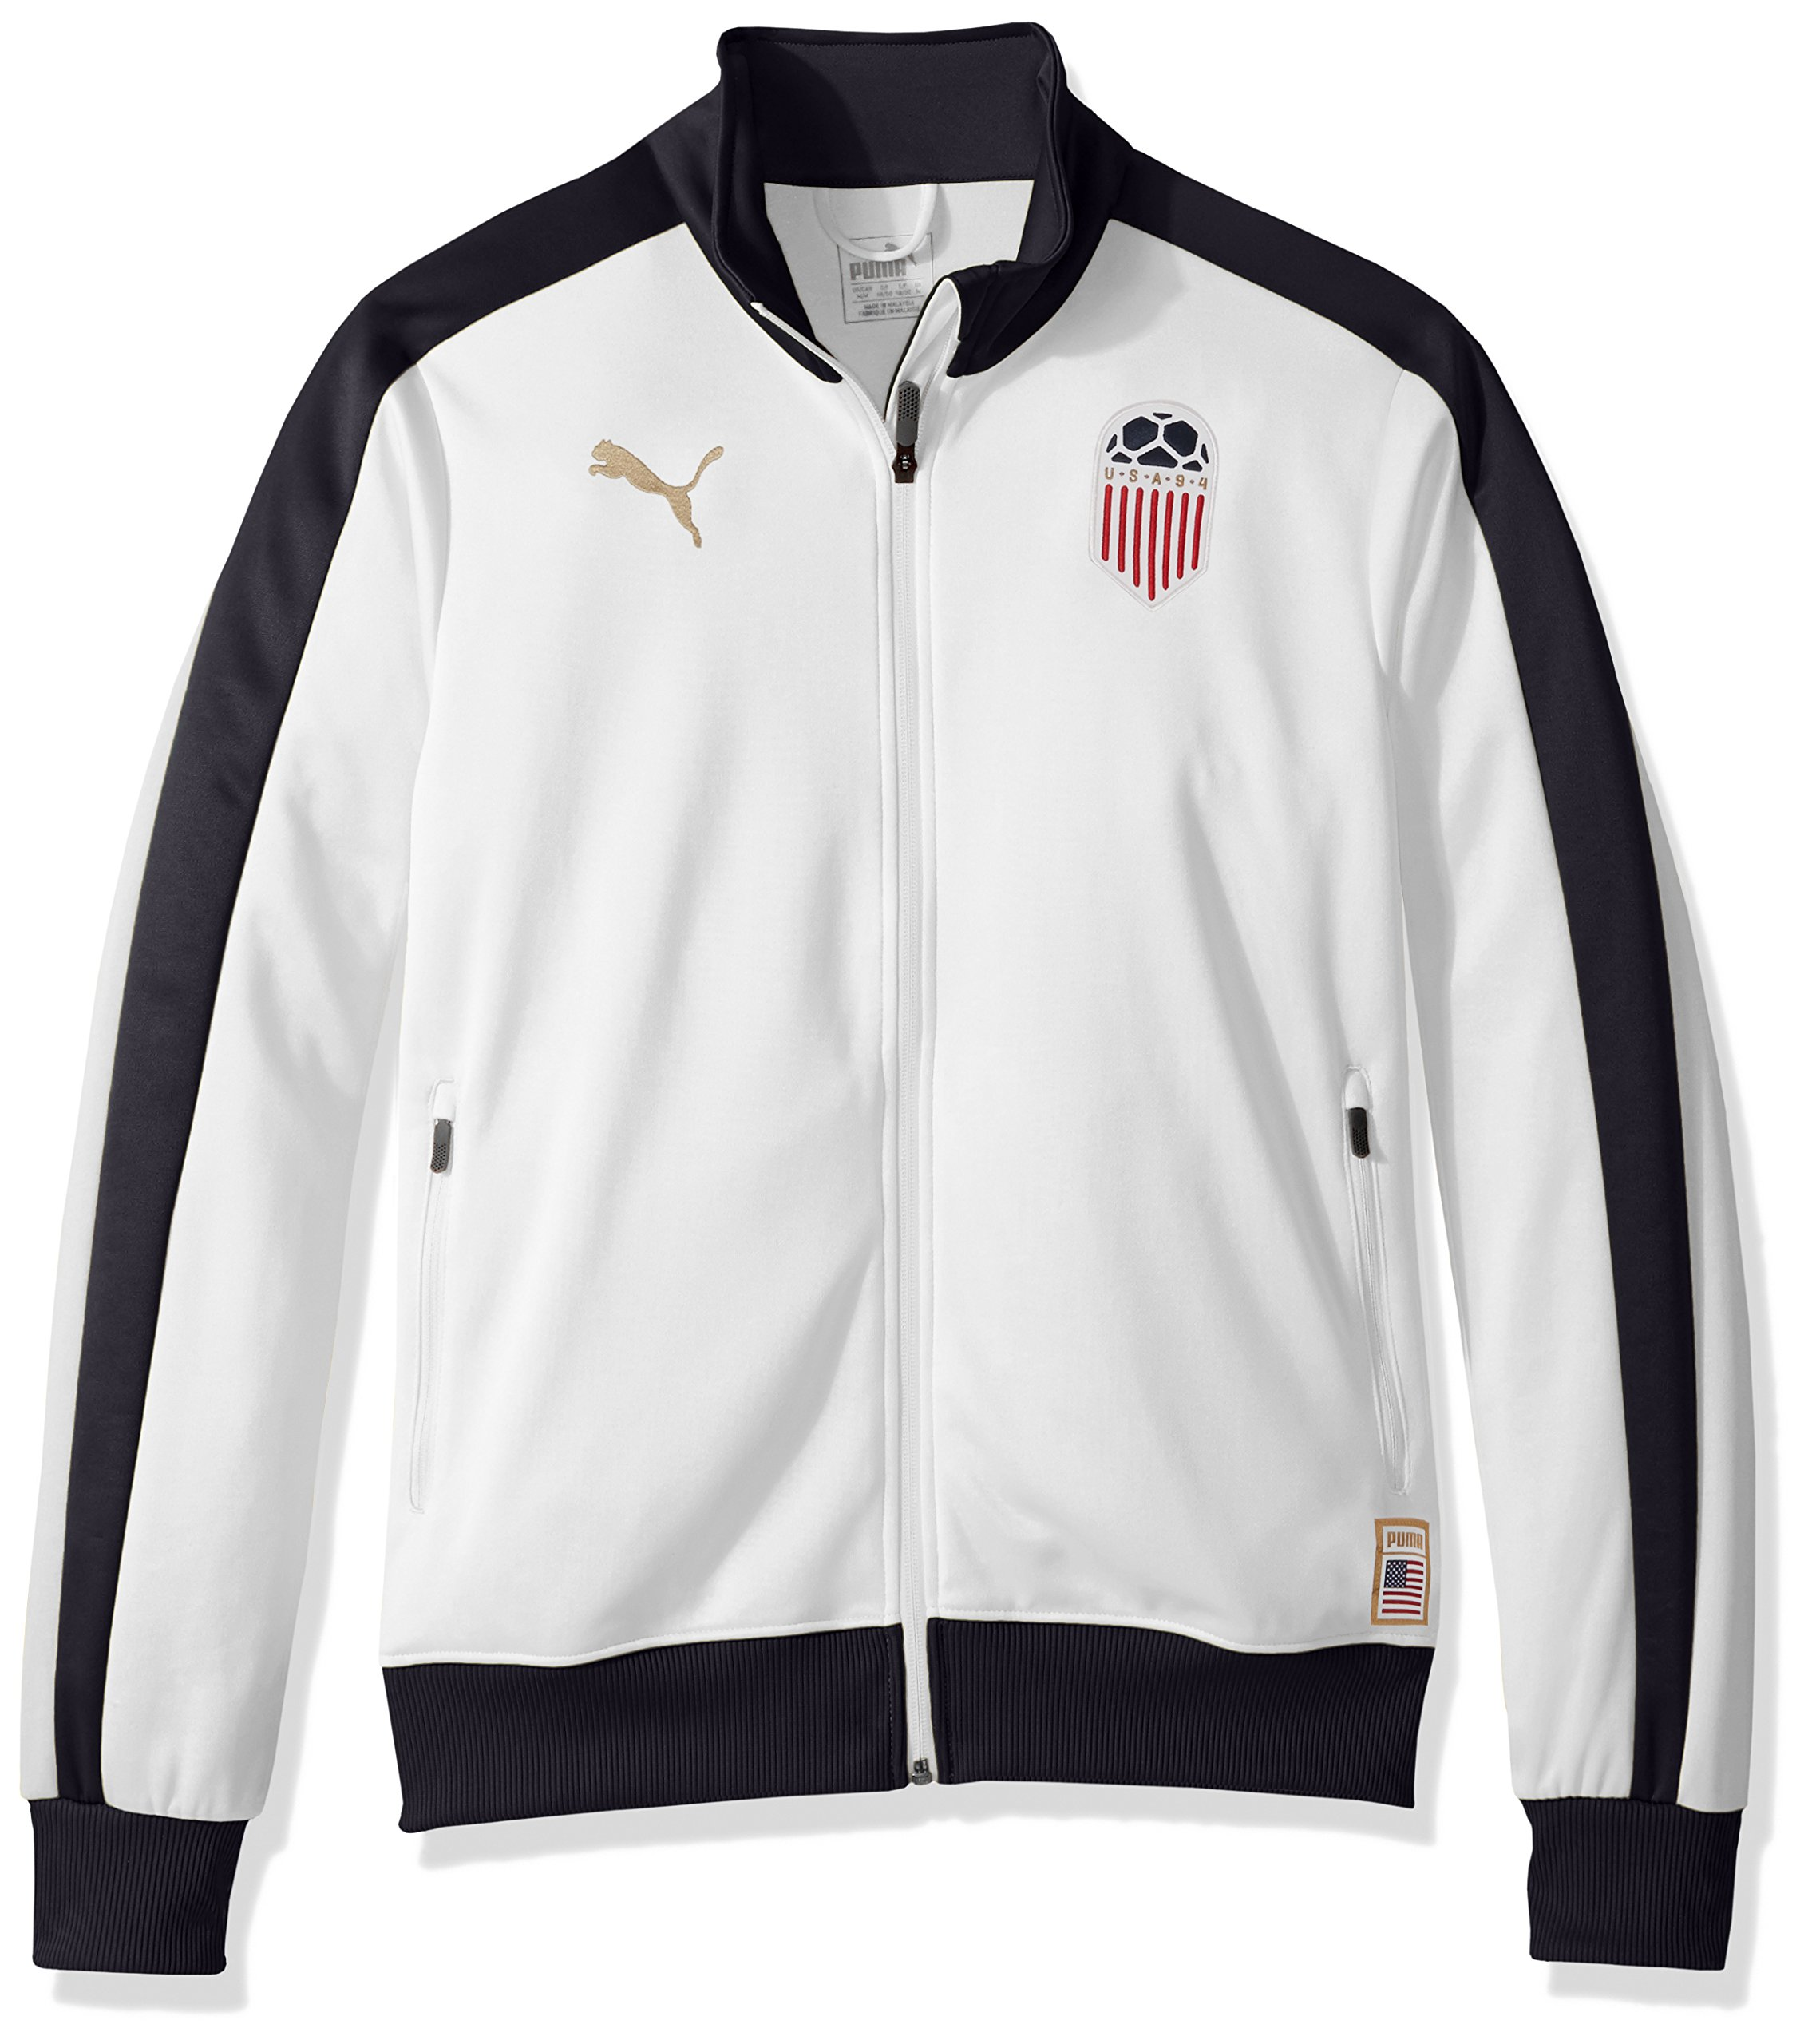 PUMA Men's Forever Football T7 Track Jacket, White USA, M